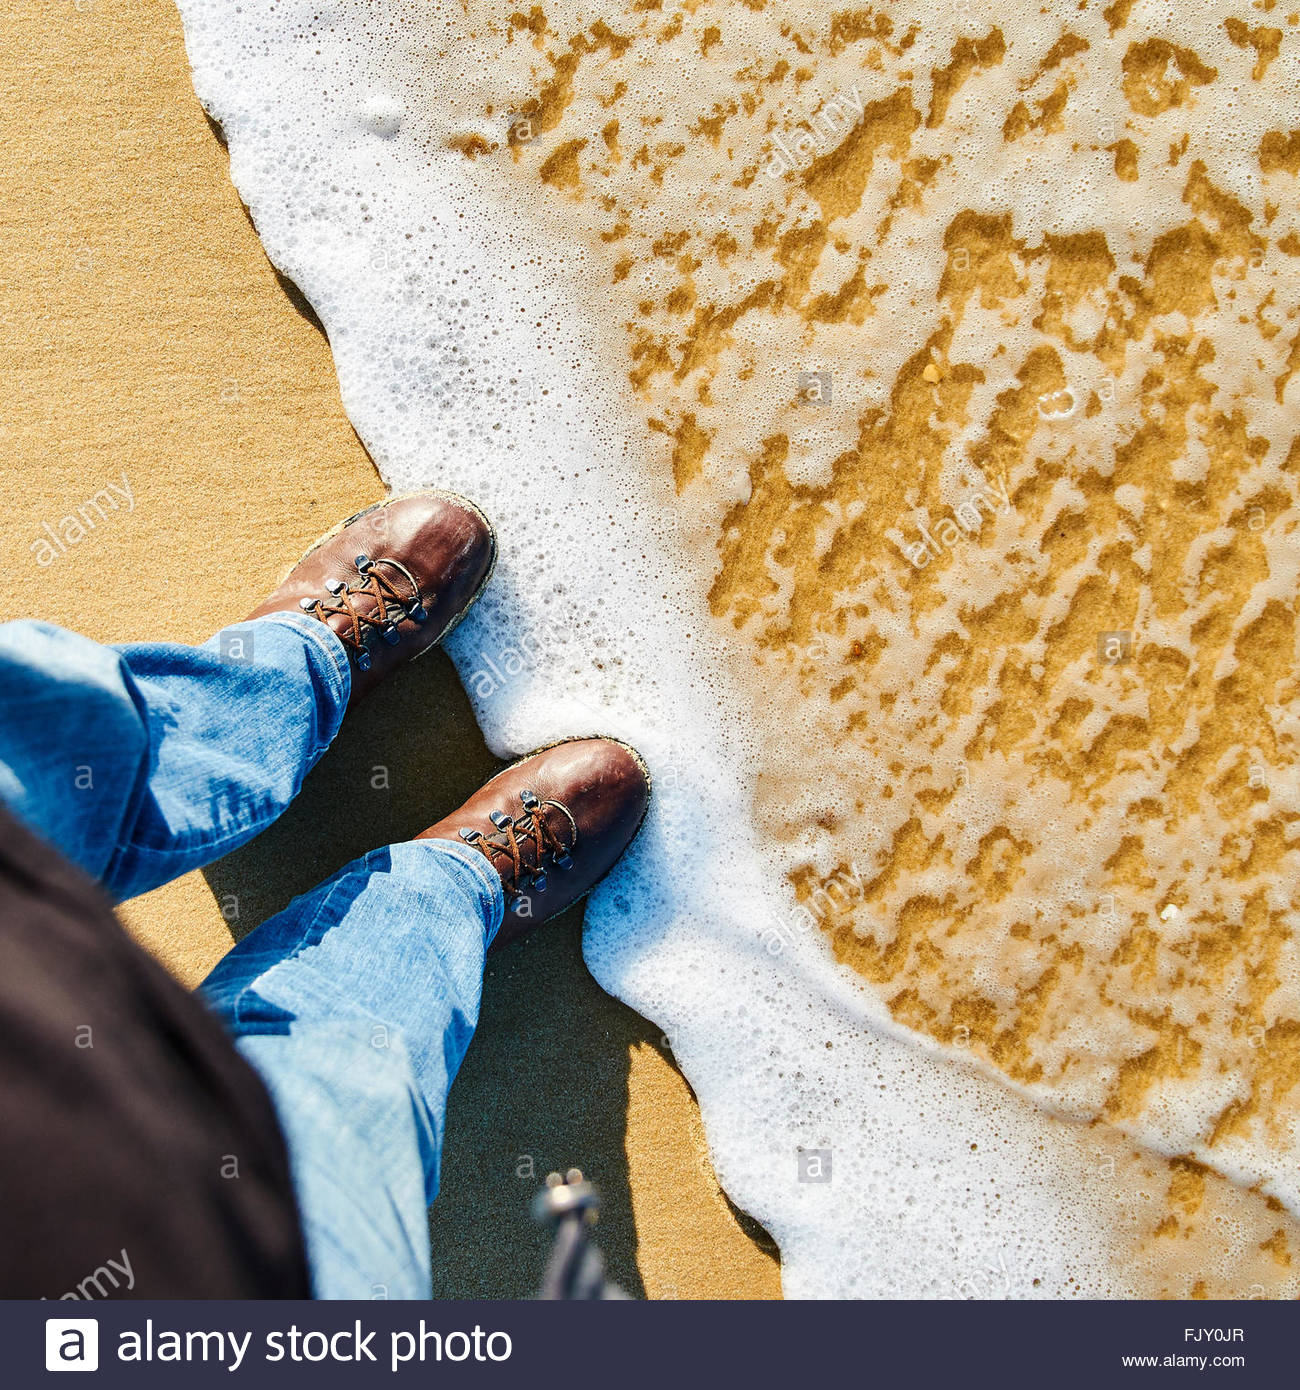 Low Section Of Man Wearing Shoes On Shore At Beach - Stock Image